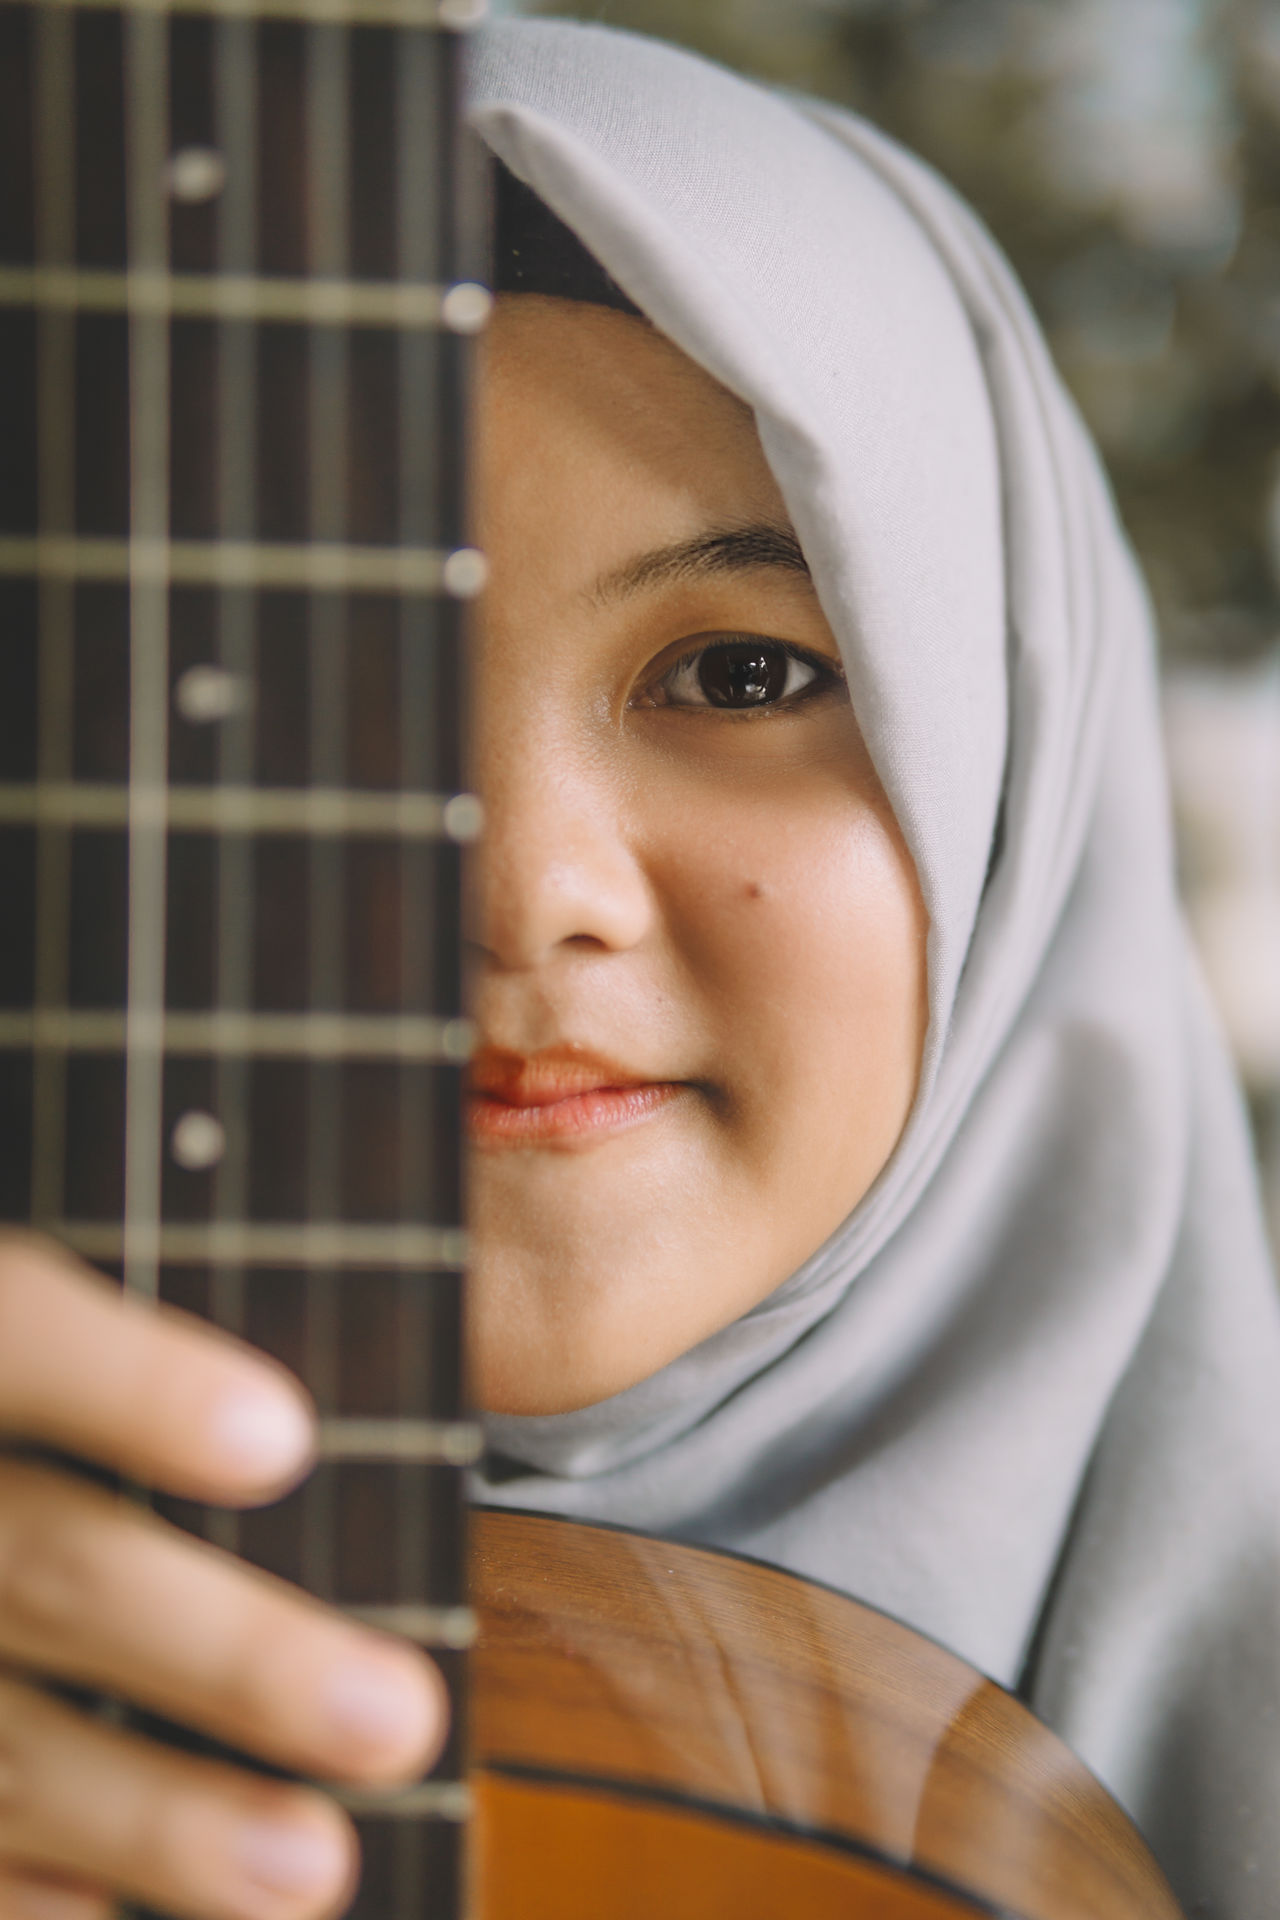 Adult Adults Only Arts Culture And Entertainment Close-up Day Eye EyeEmNewHere Full Length Girl Guitar Headshot Hijab Leisure Activity Lifestyles Looking At Camera Music Musical Instrument One Person Outdoors People Portrait Real People Standing Young Adult Young Women